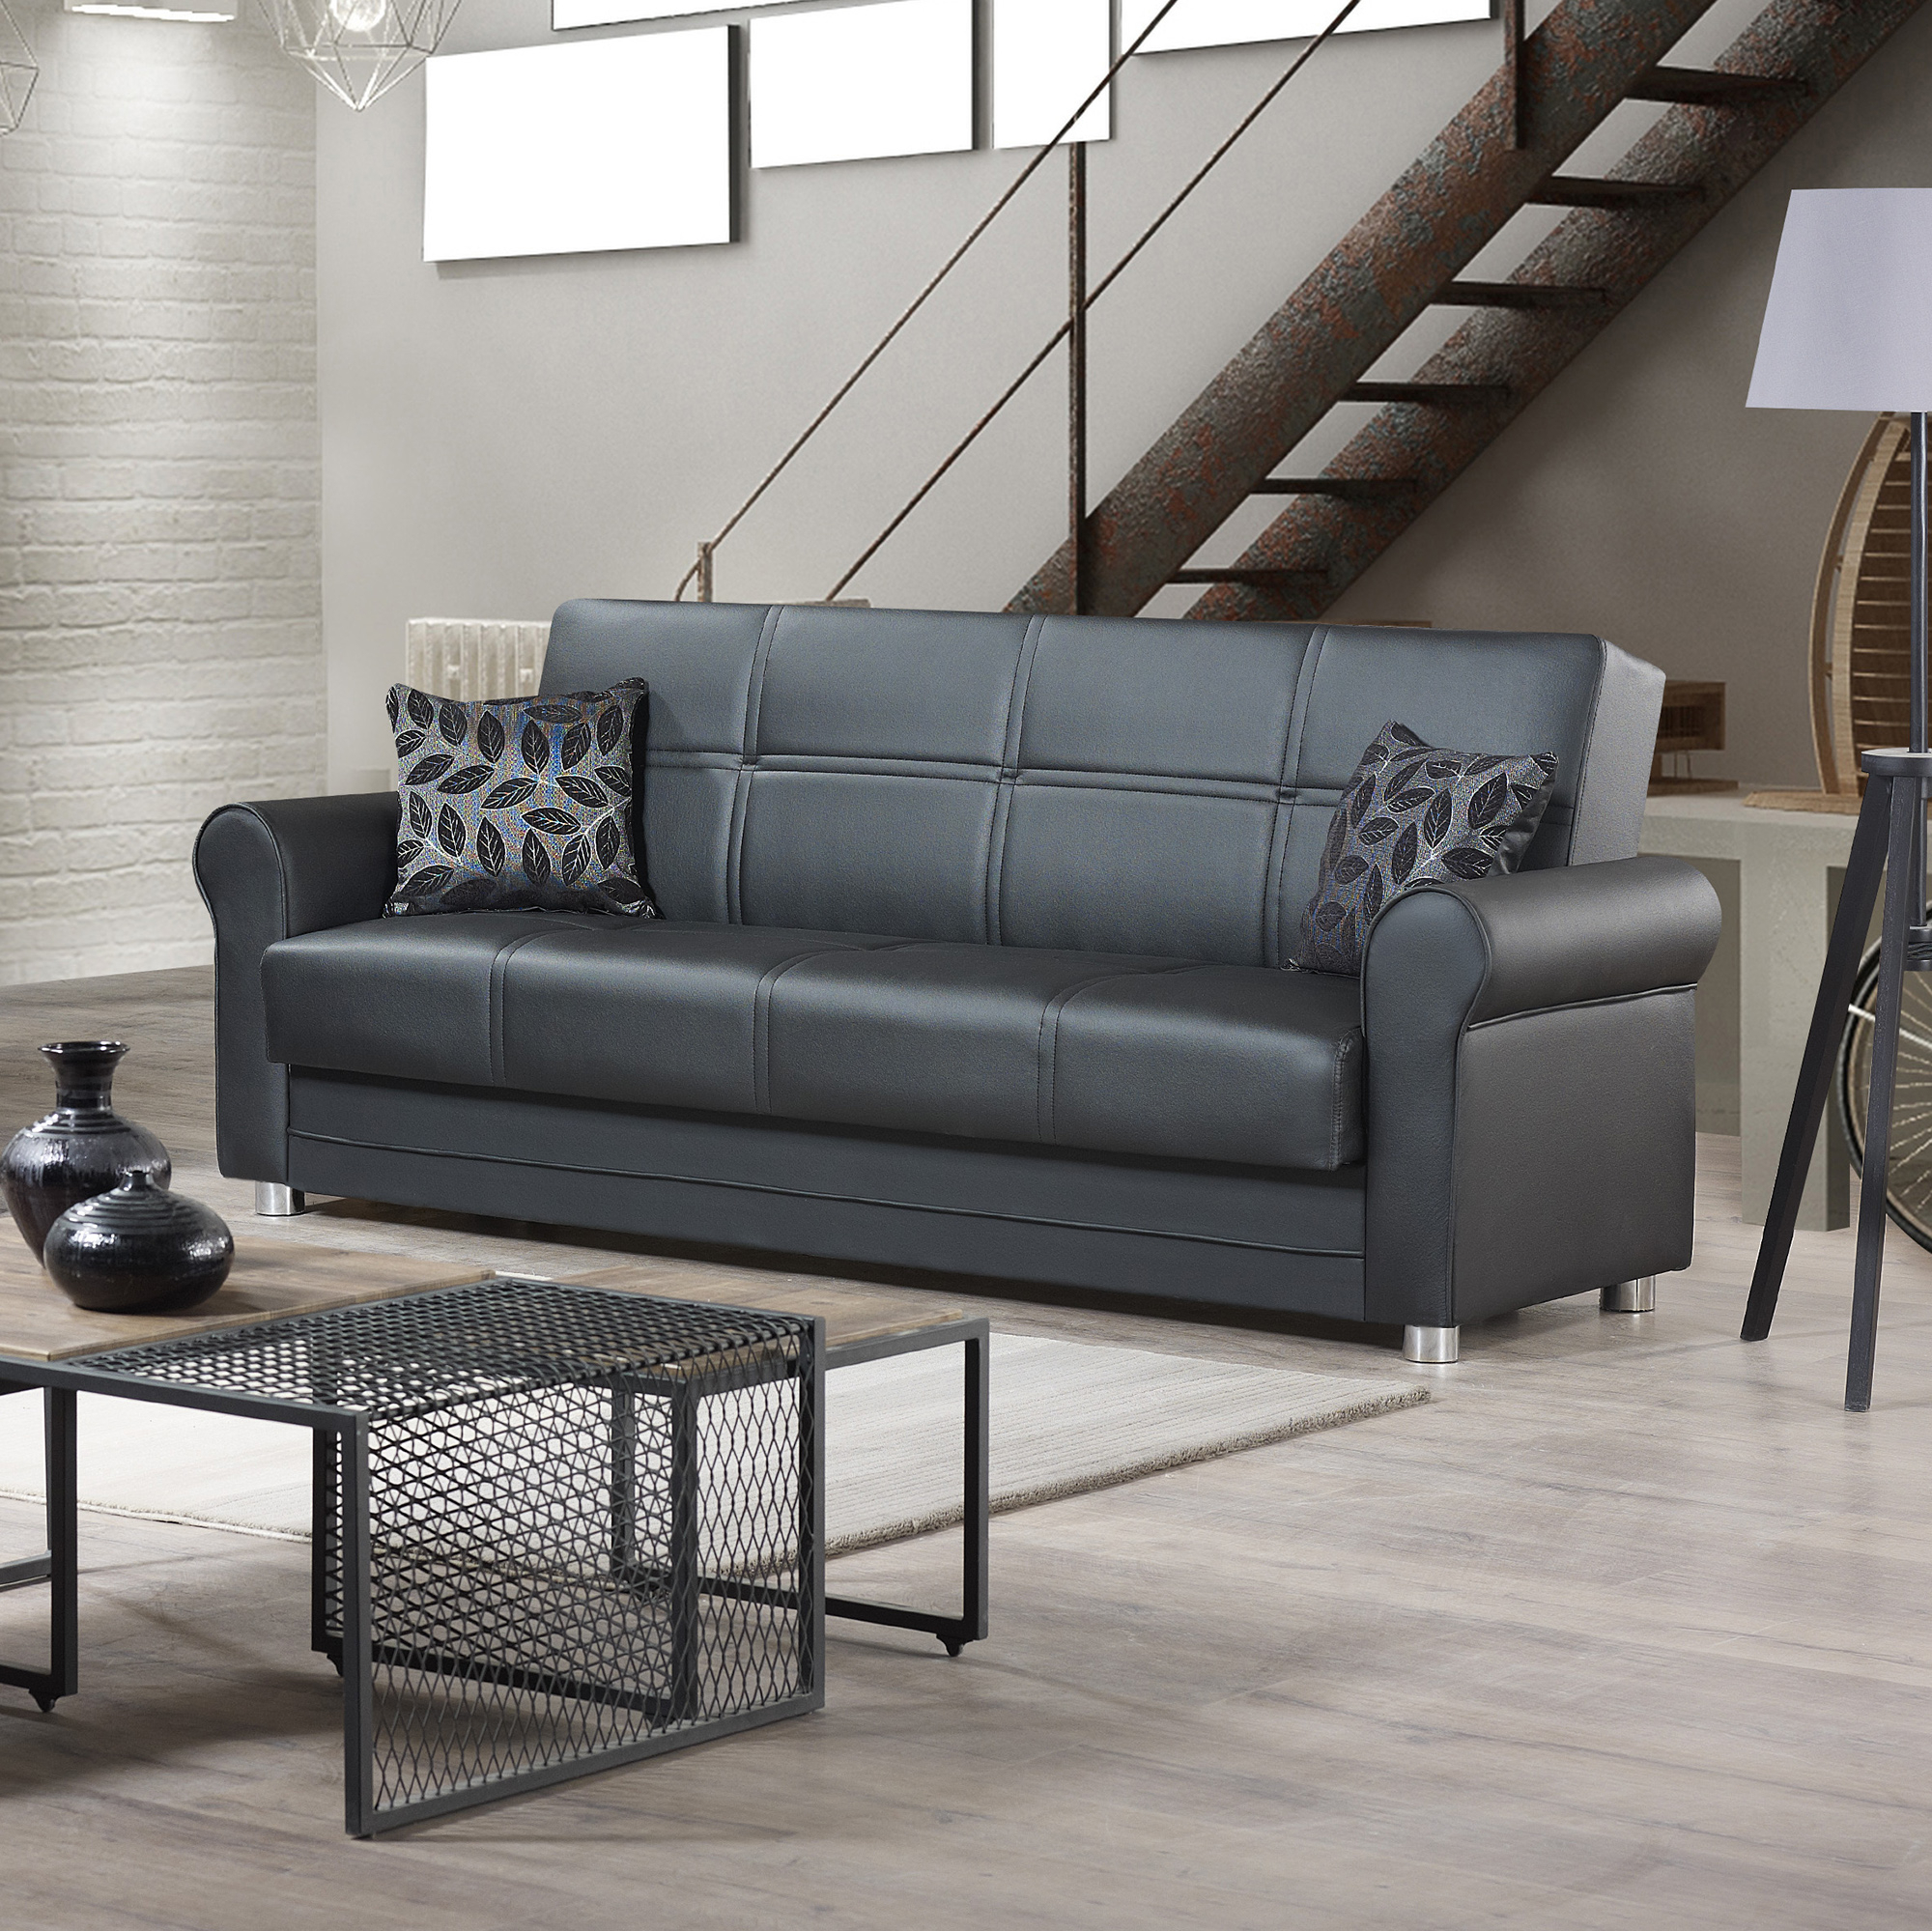 Ottomanson Avalon Sofa Bed With Storage In Leather Intended For Hartford Storage Sectional Futon Sofas (View 1 of 15)